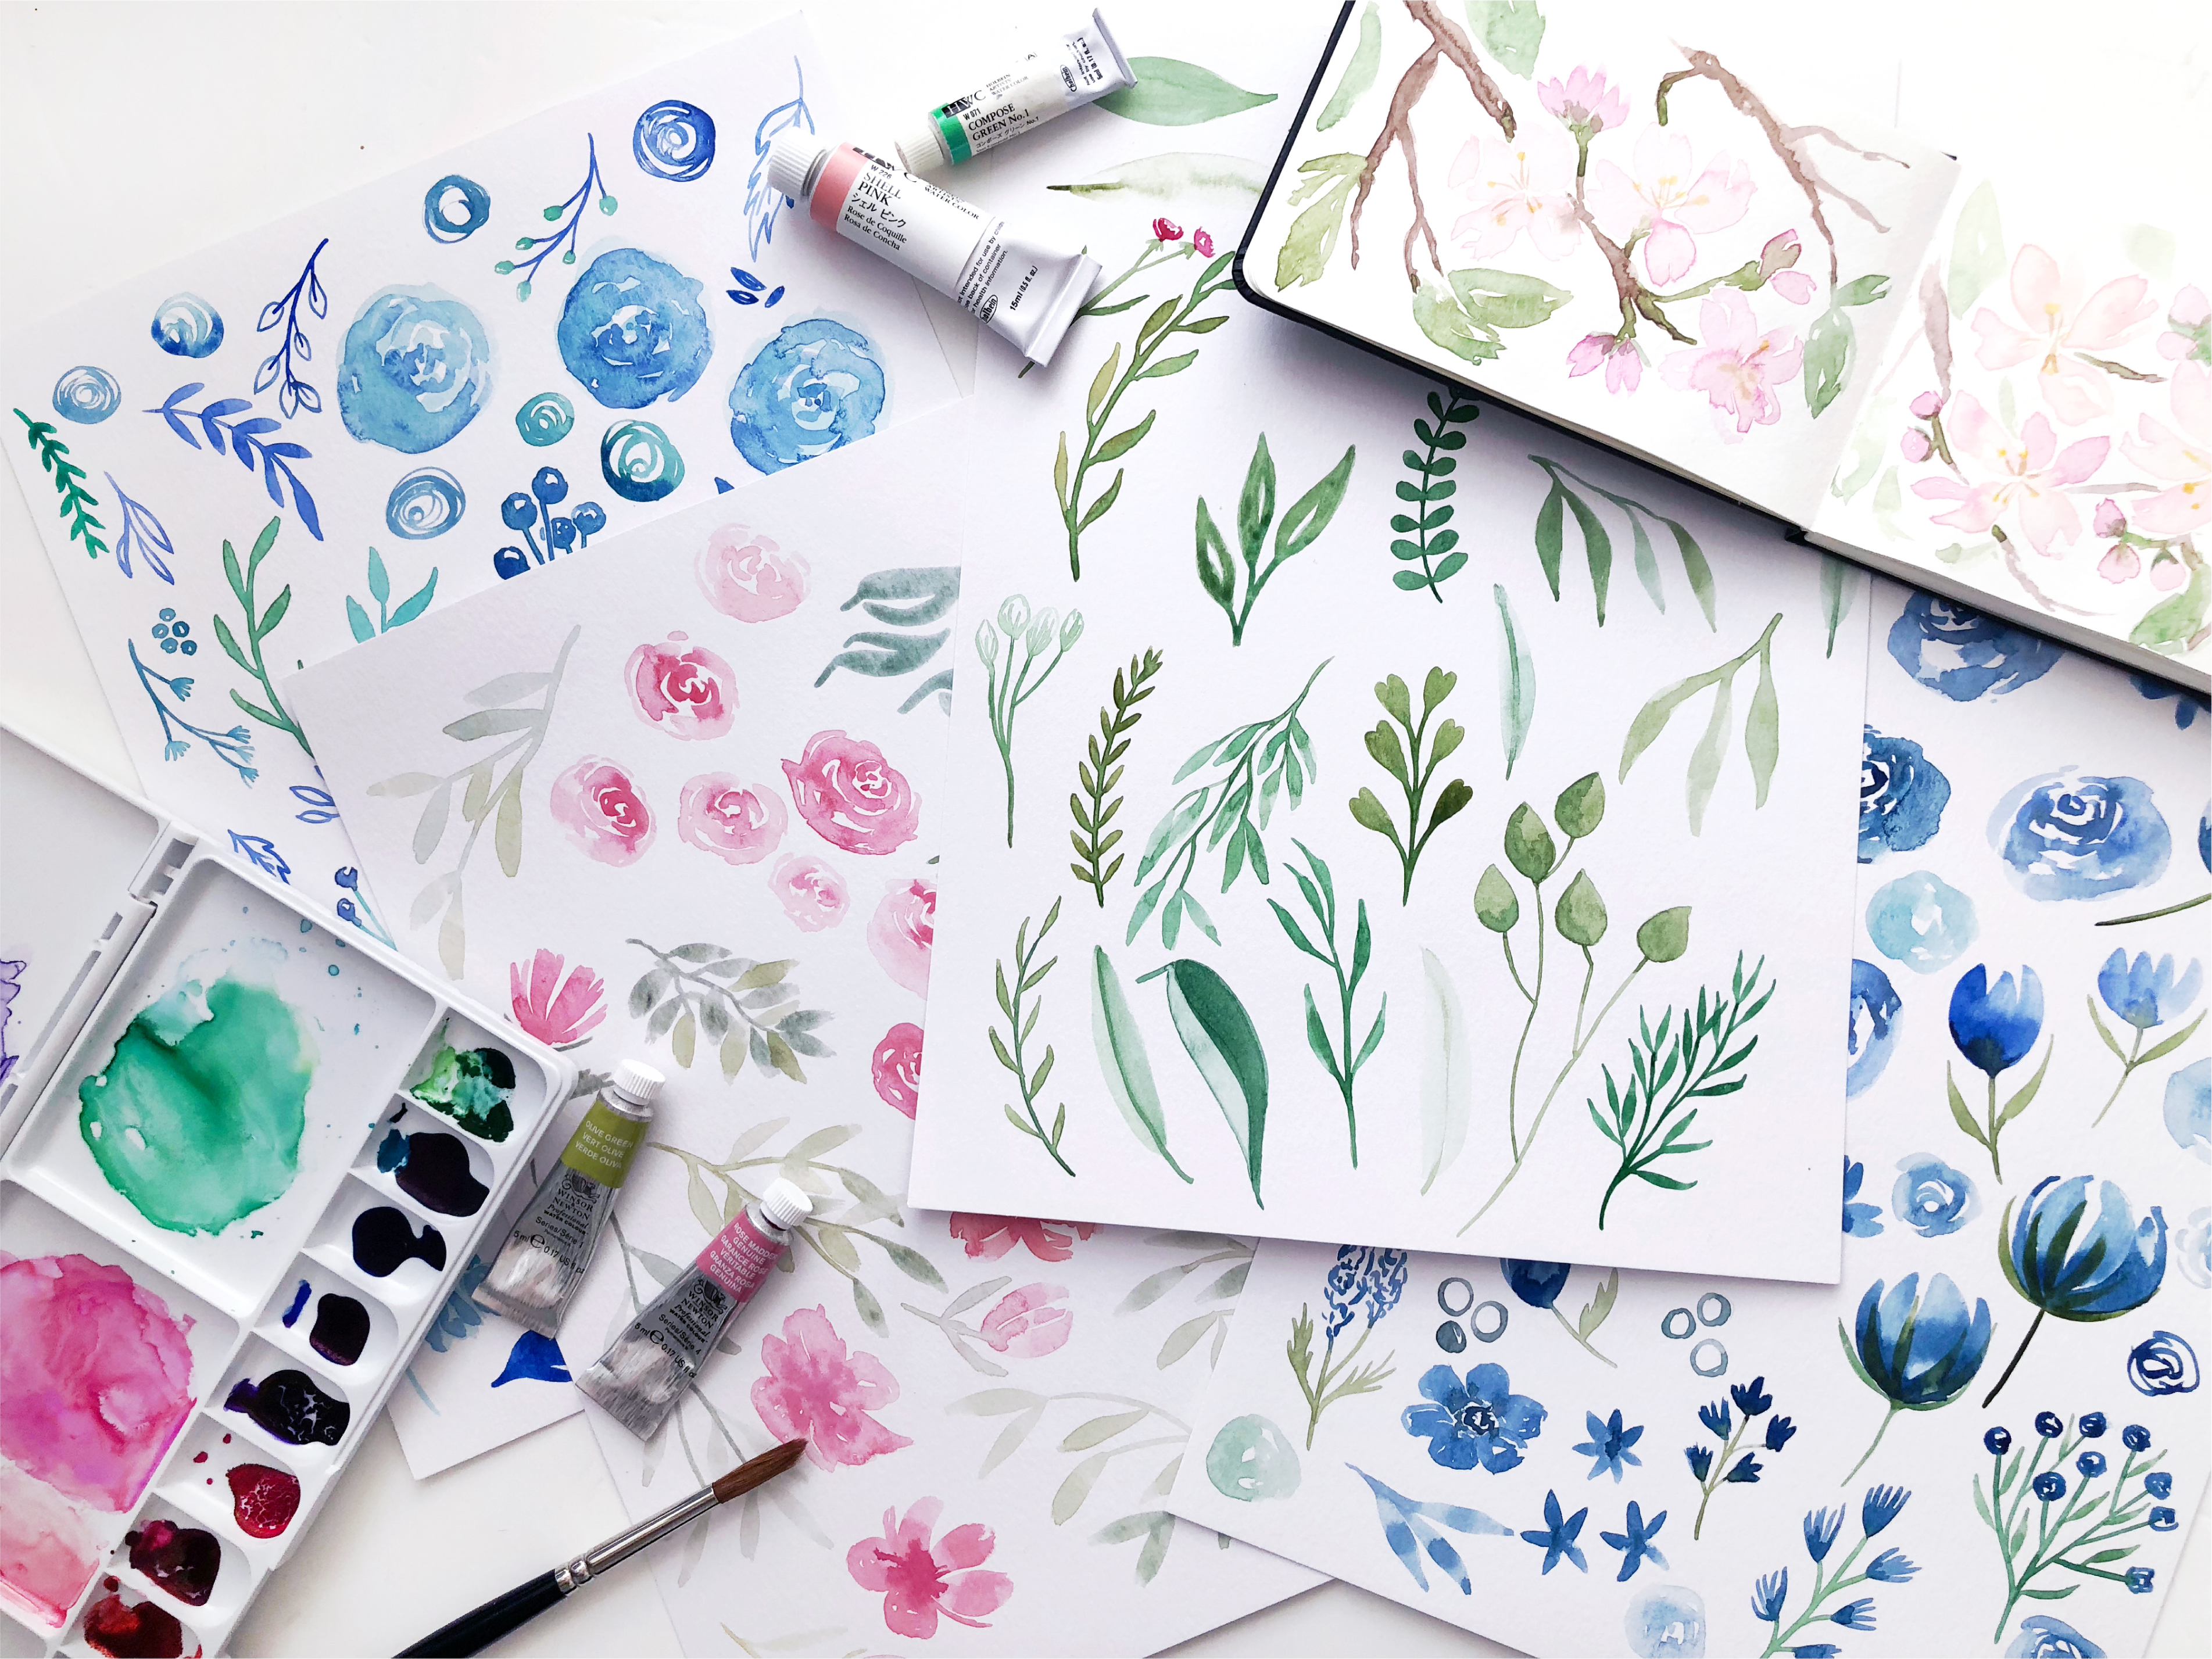 Watercolour paintings of various leaves and designs on white paper